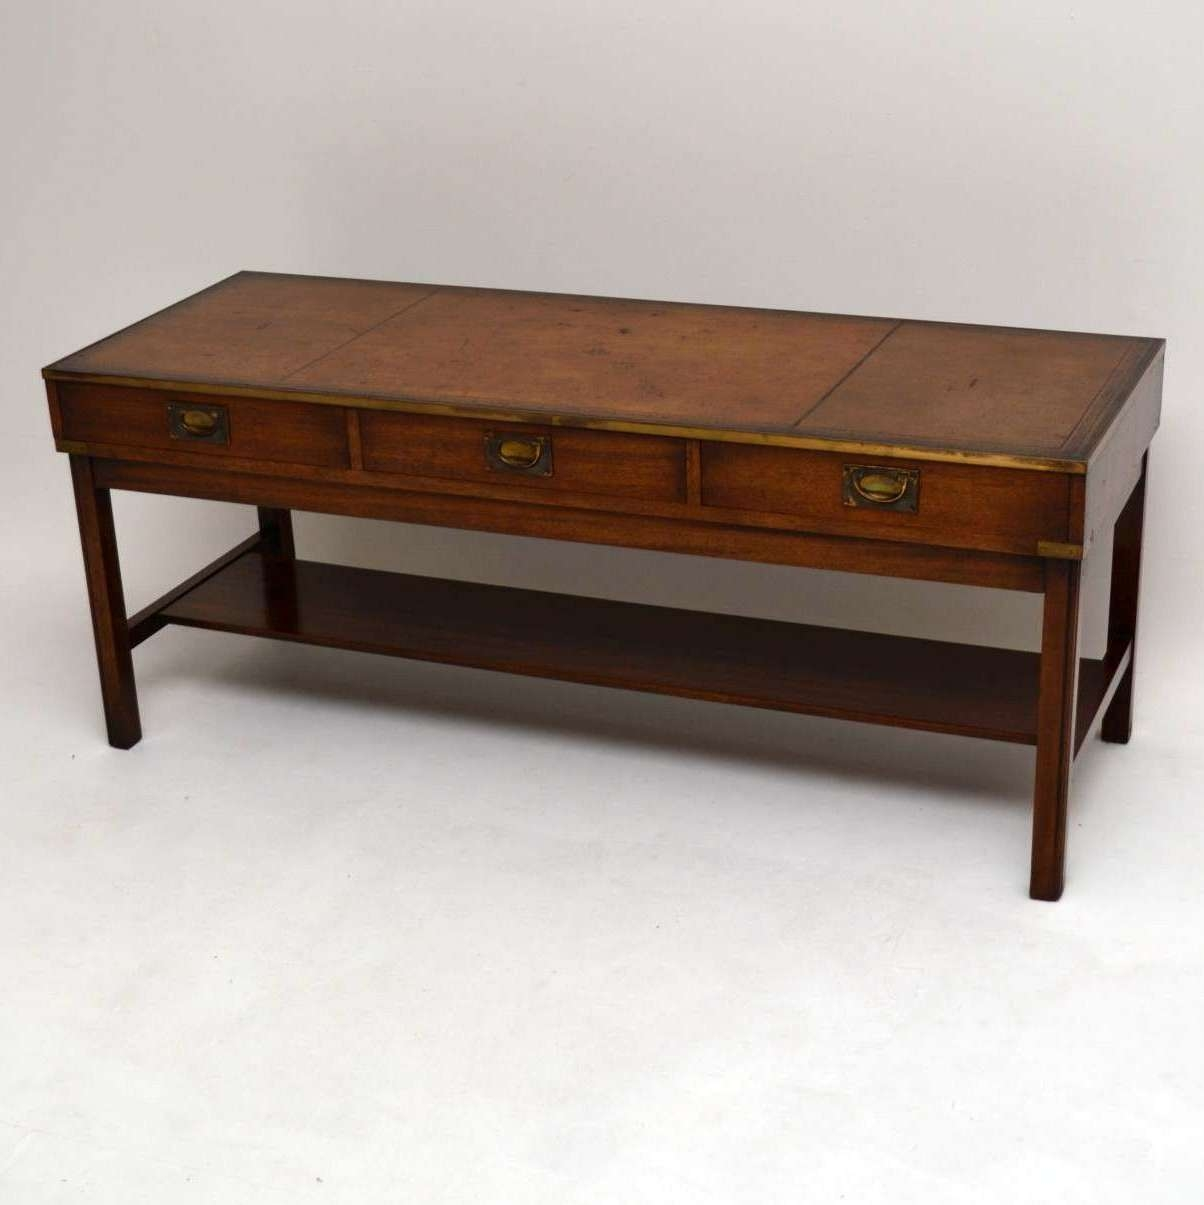 Famous Campaign Coffee Tables For Coffee Tables : Campaign Coffee Table Low Folding Sarreid Ltd (View 10 of 20)